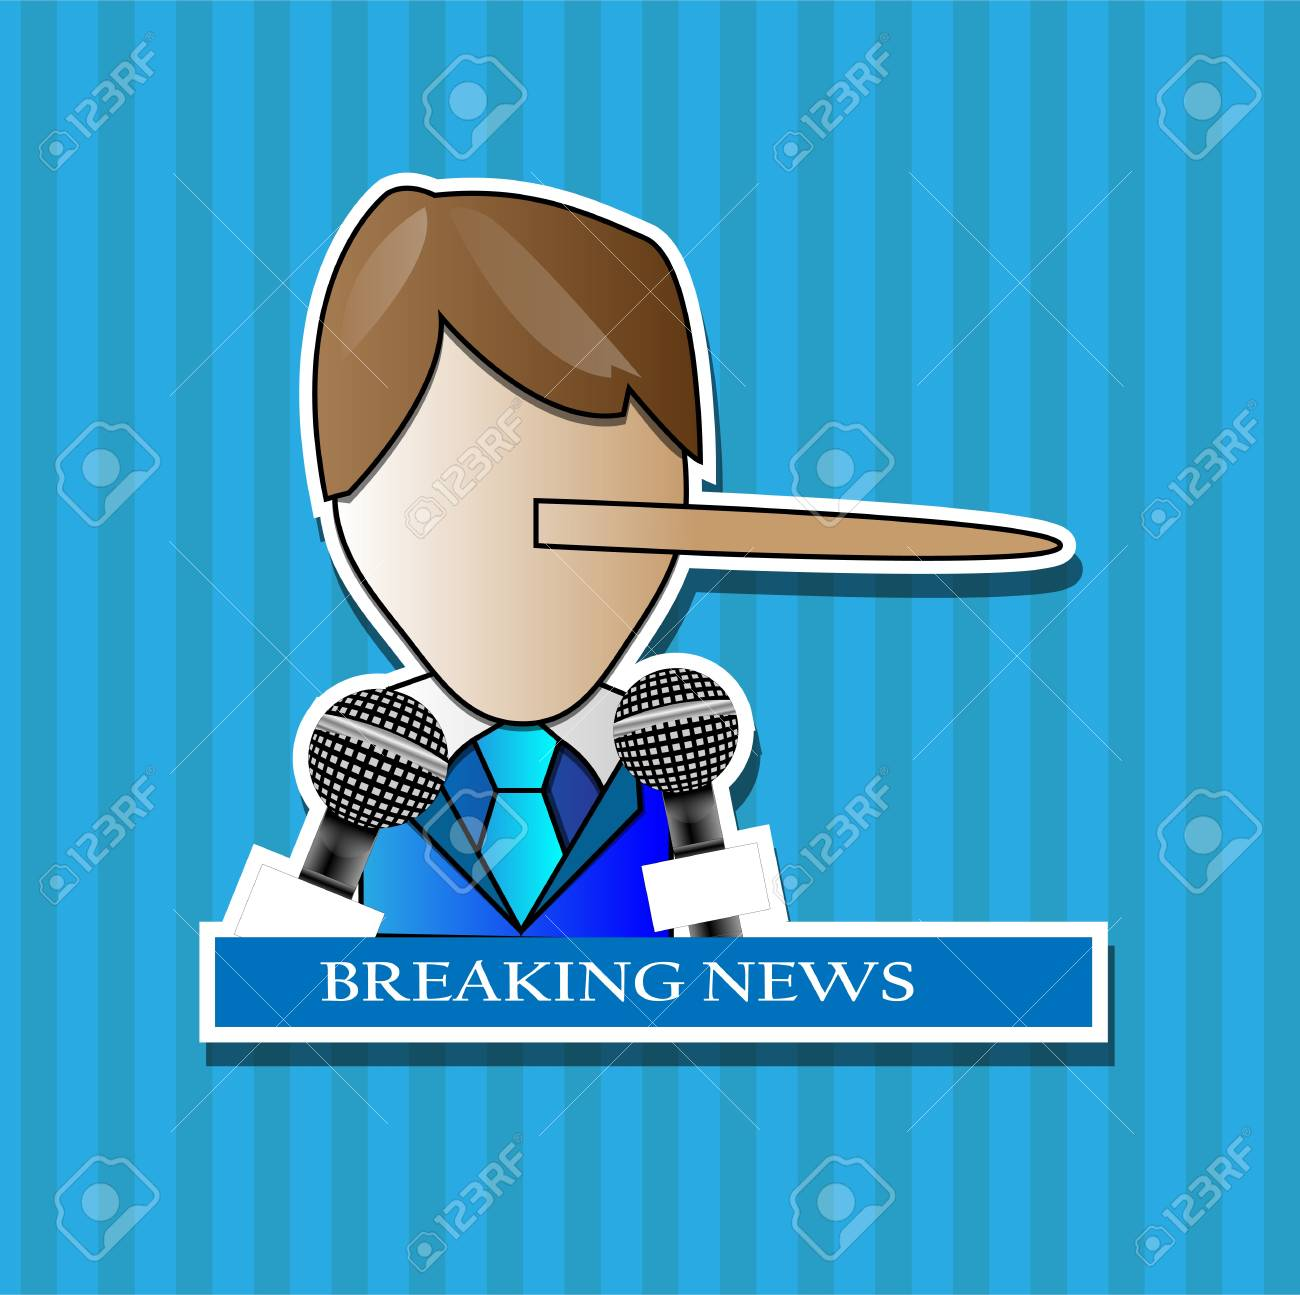 Press conference with person making a lie with breaking news Stock Vector - 14700693